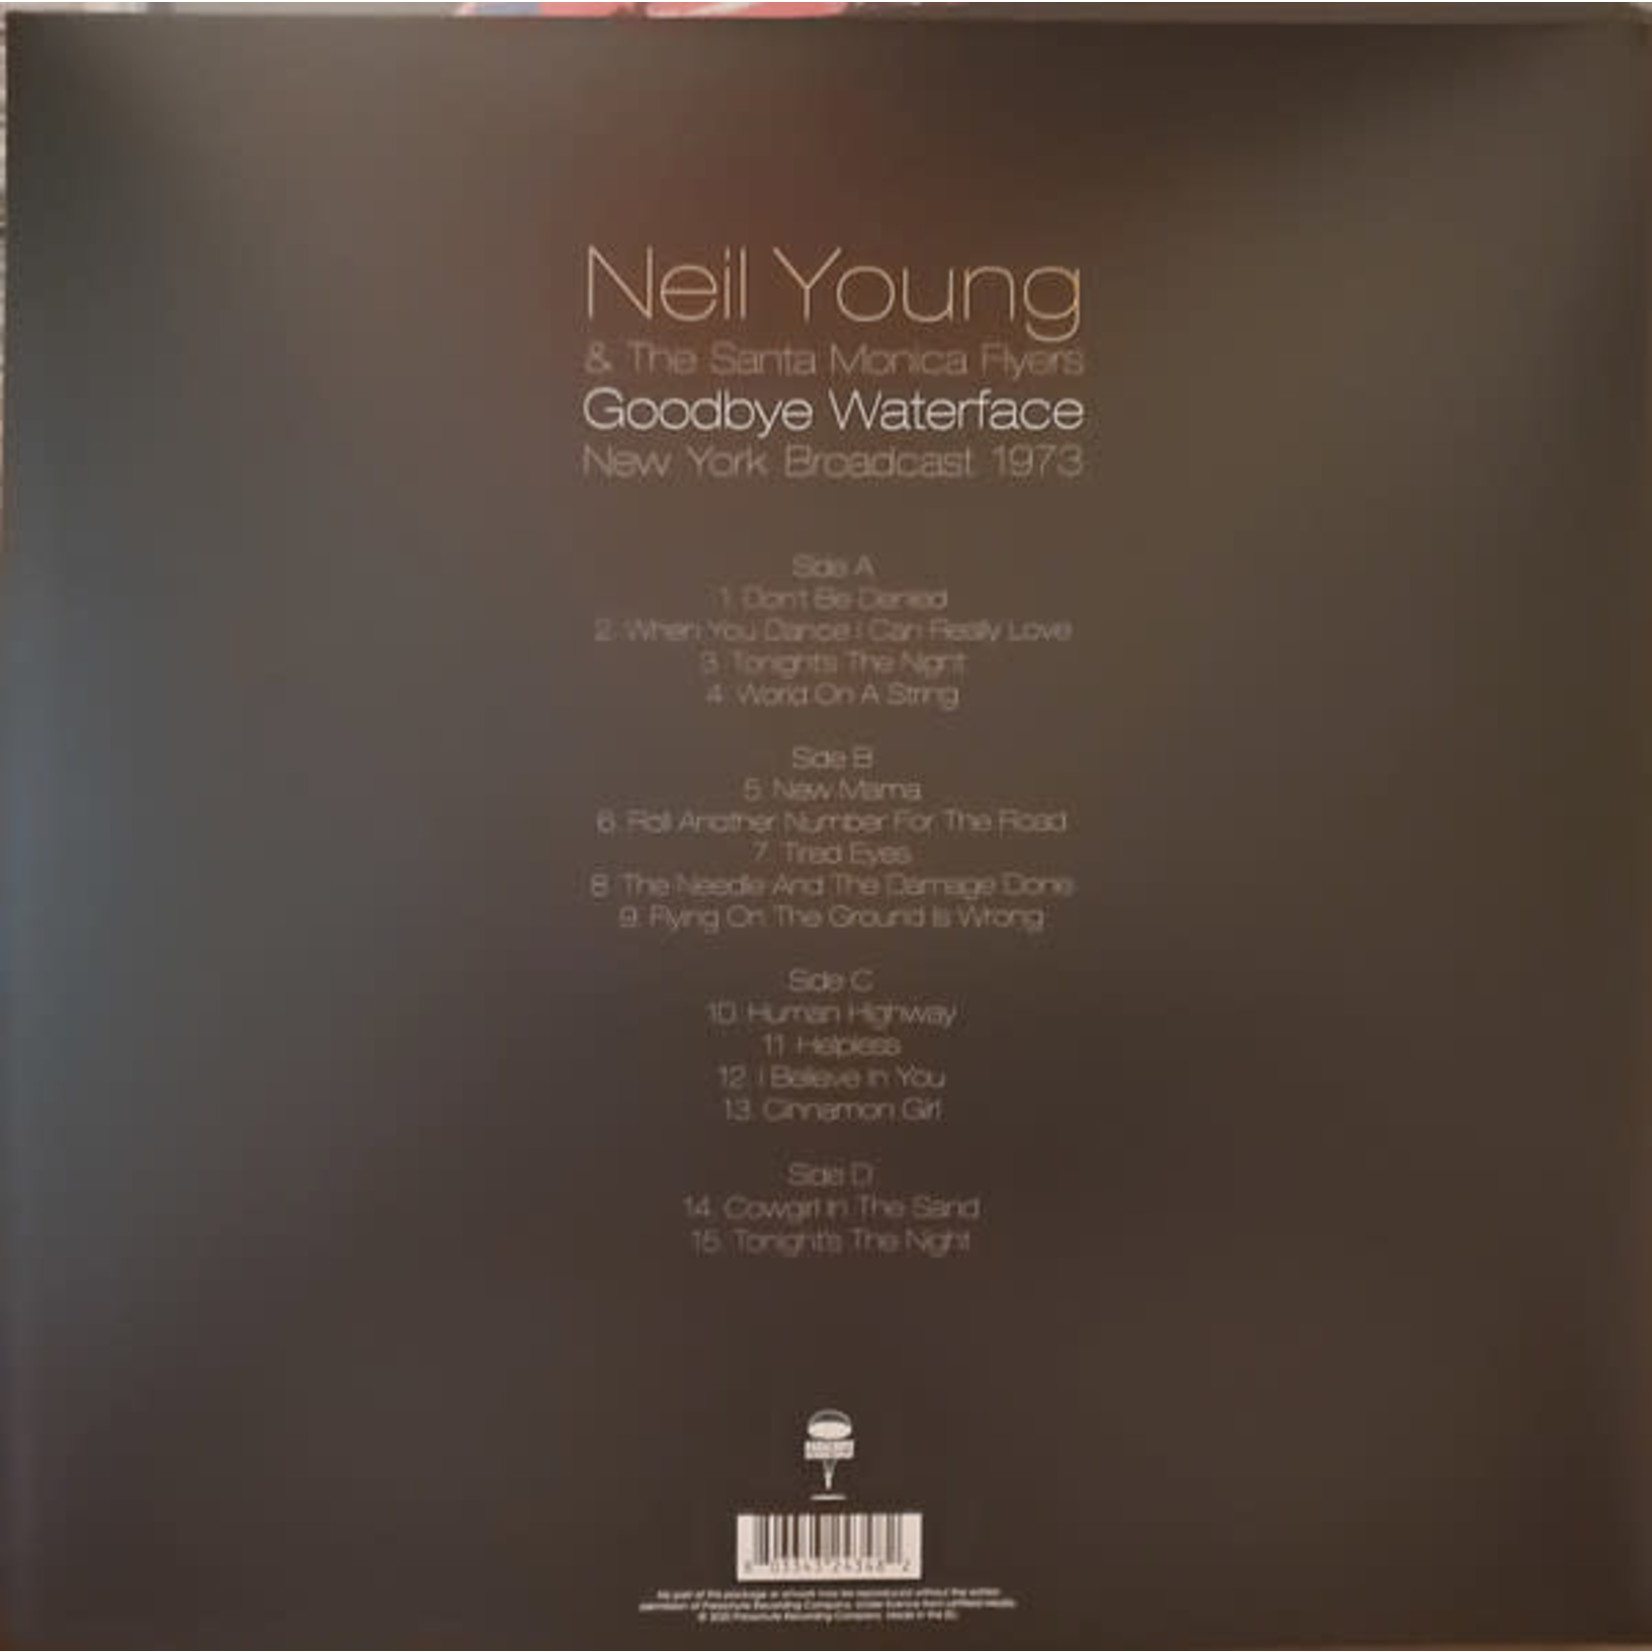 NEIL YOUNG GOODBYE WATERFACE (2LP)